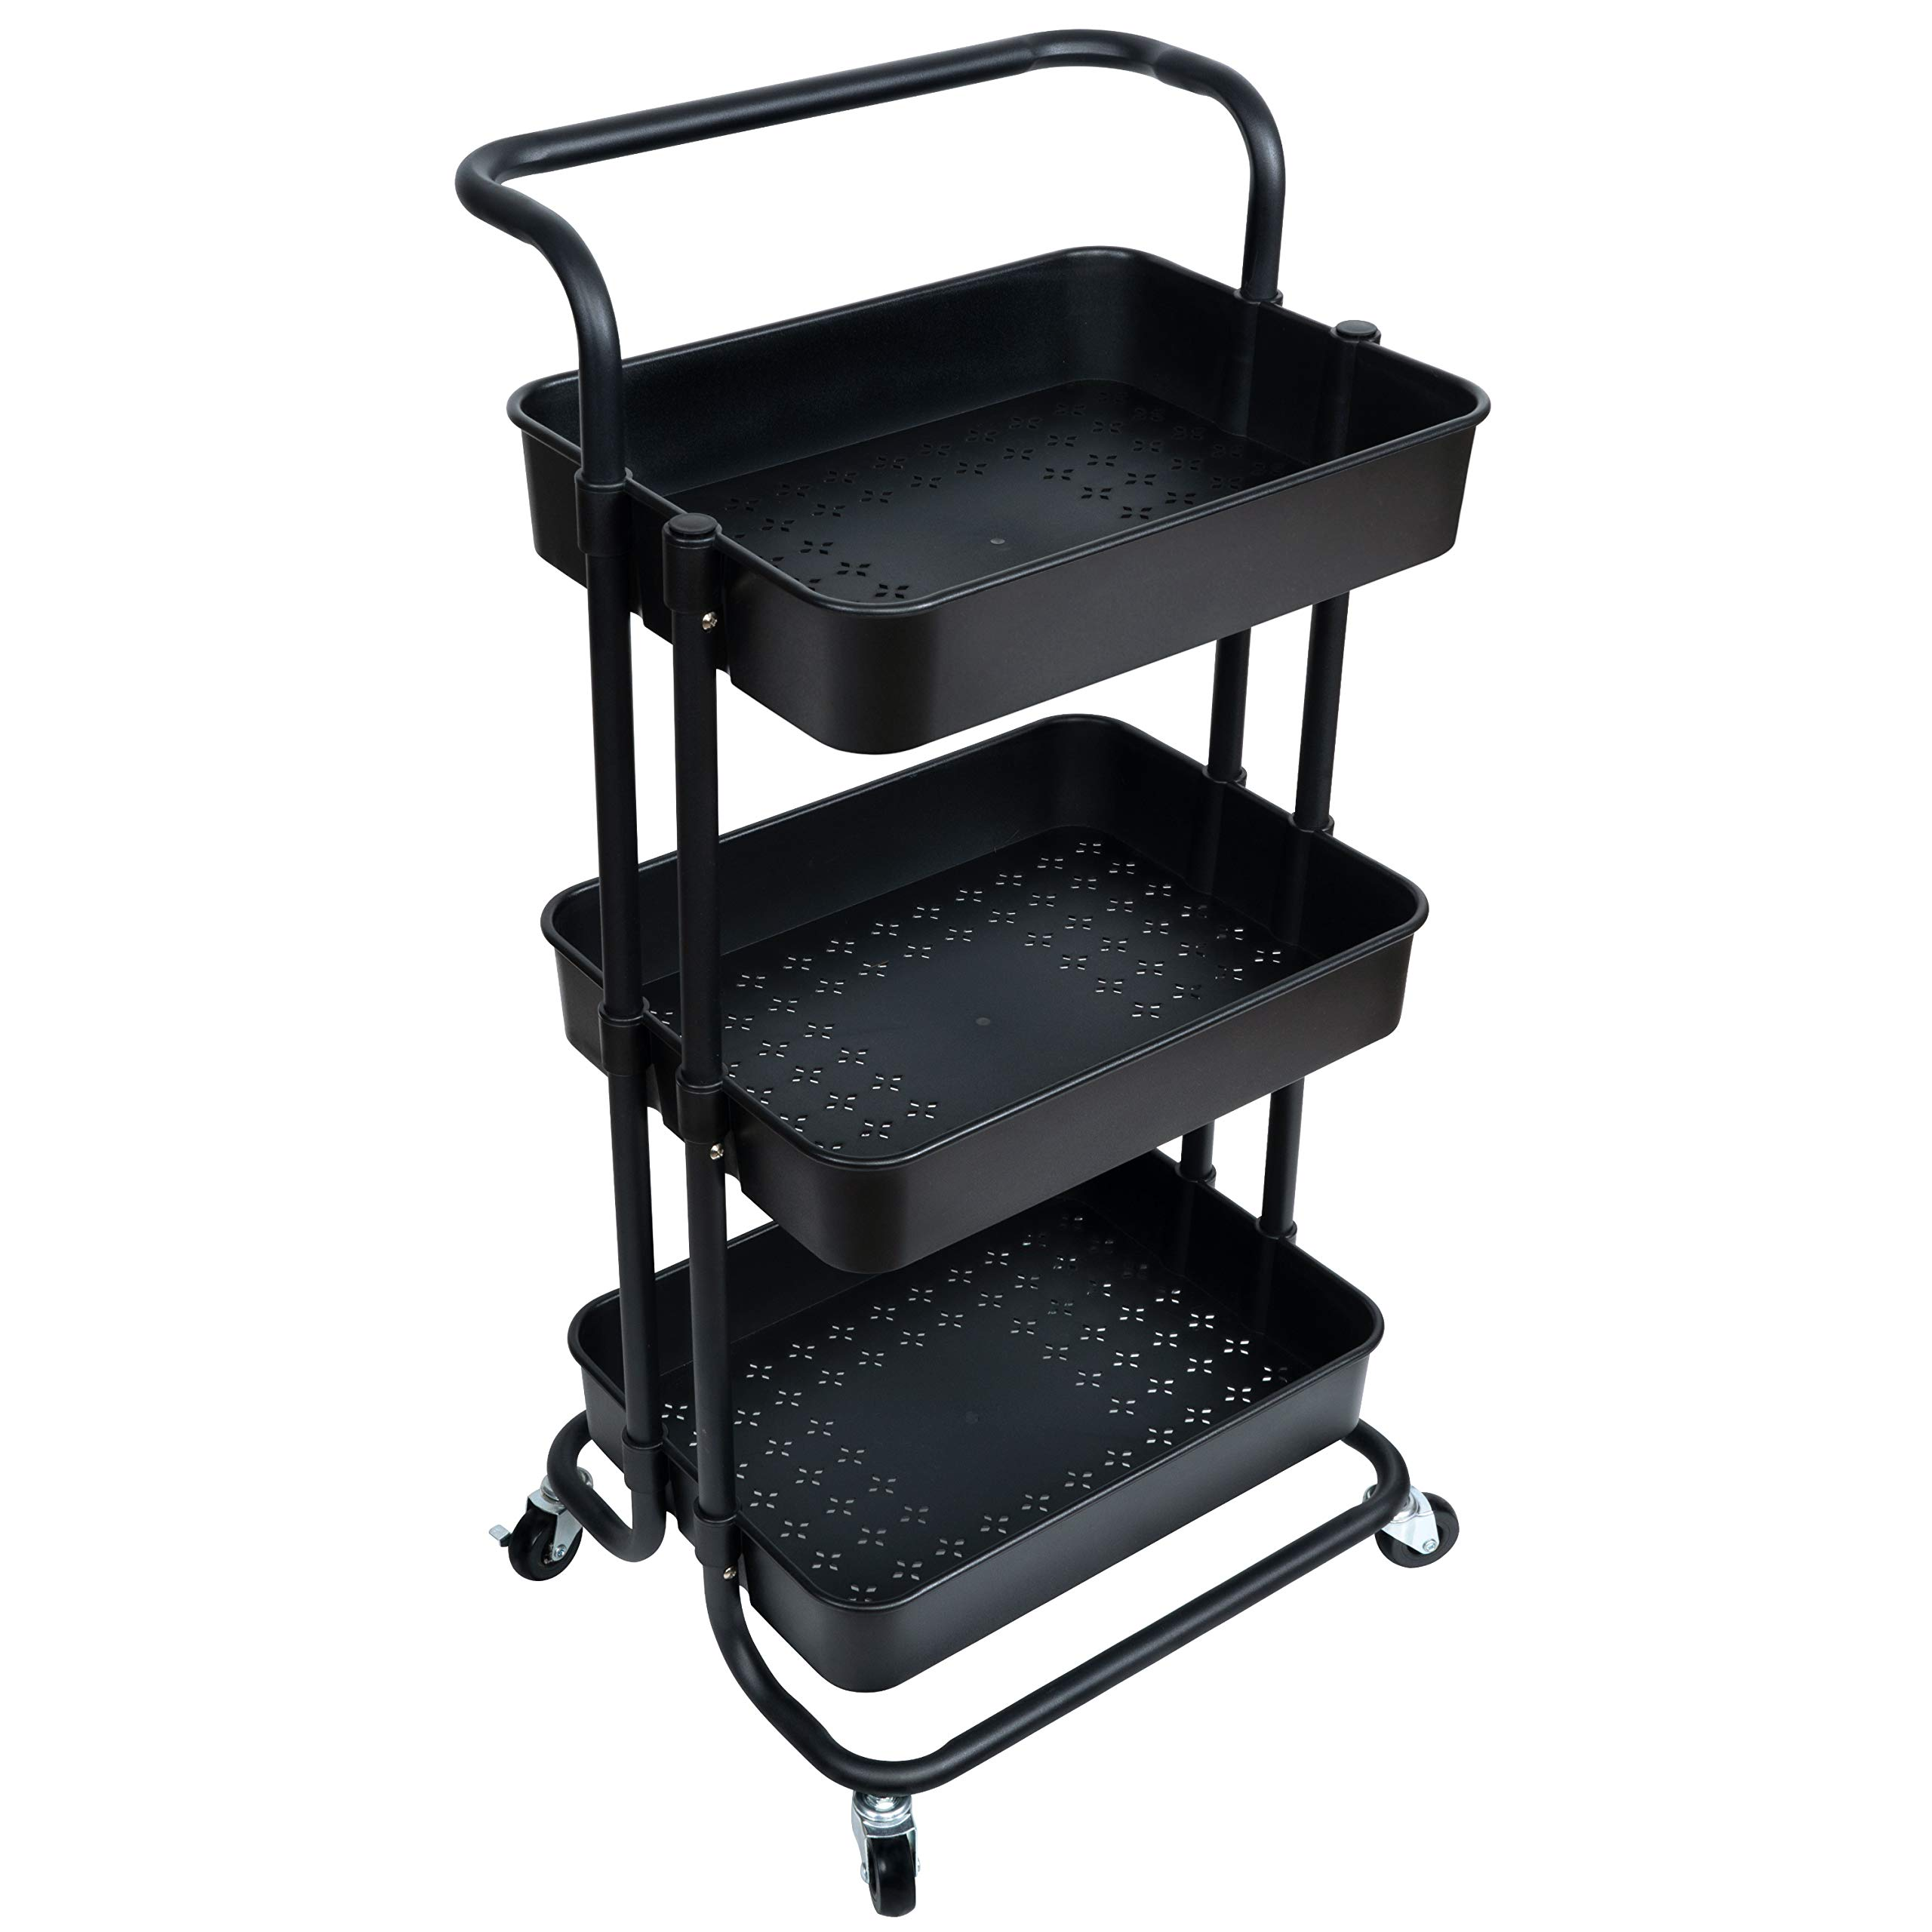 NiDream Bedding 3-Tier Utility Storage Cart, Utility Cart with Lockable Wheels, Multifunction Storage Trolley Utility Cart with Mesh Basket and Handles, Easy Assembly for Kitchen, Bathroom, Black by NiDream Bedding